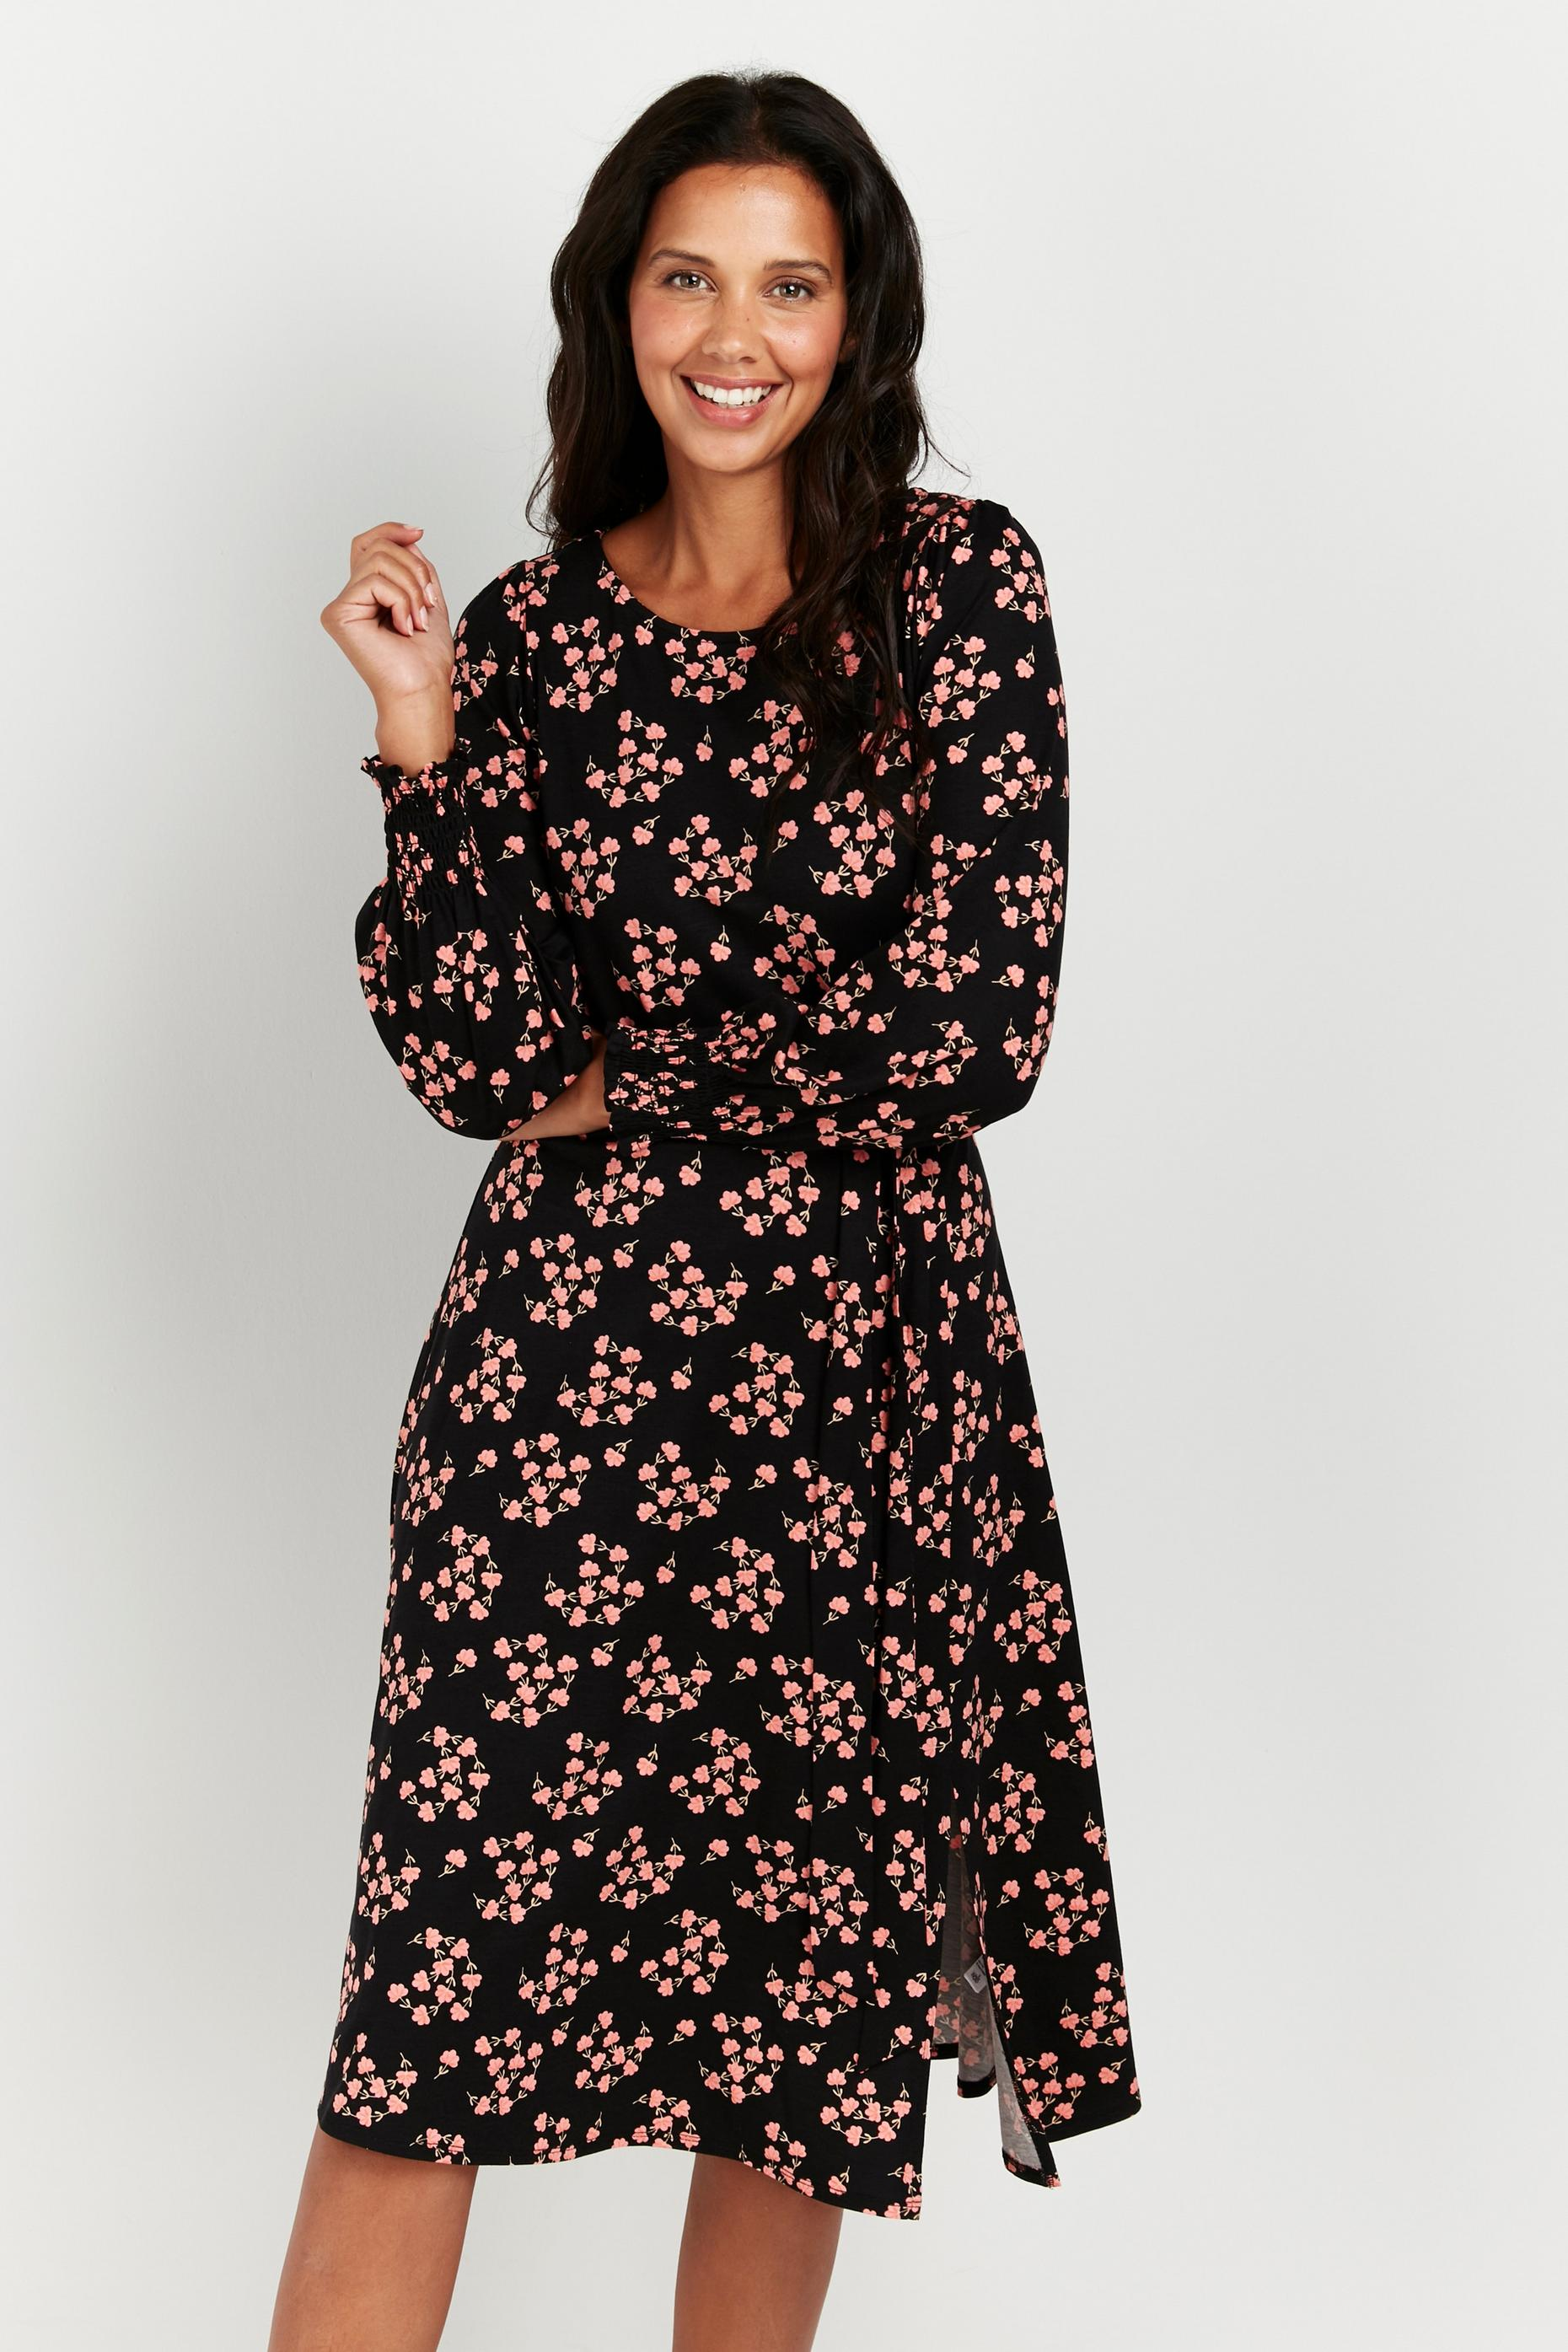 Petite Black Floral Puff Sleeve Midi Dress